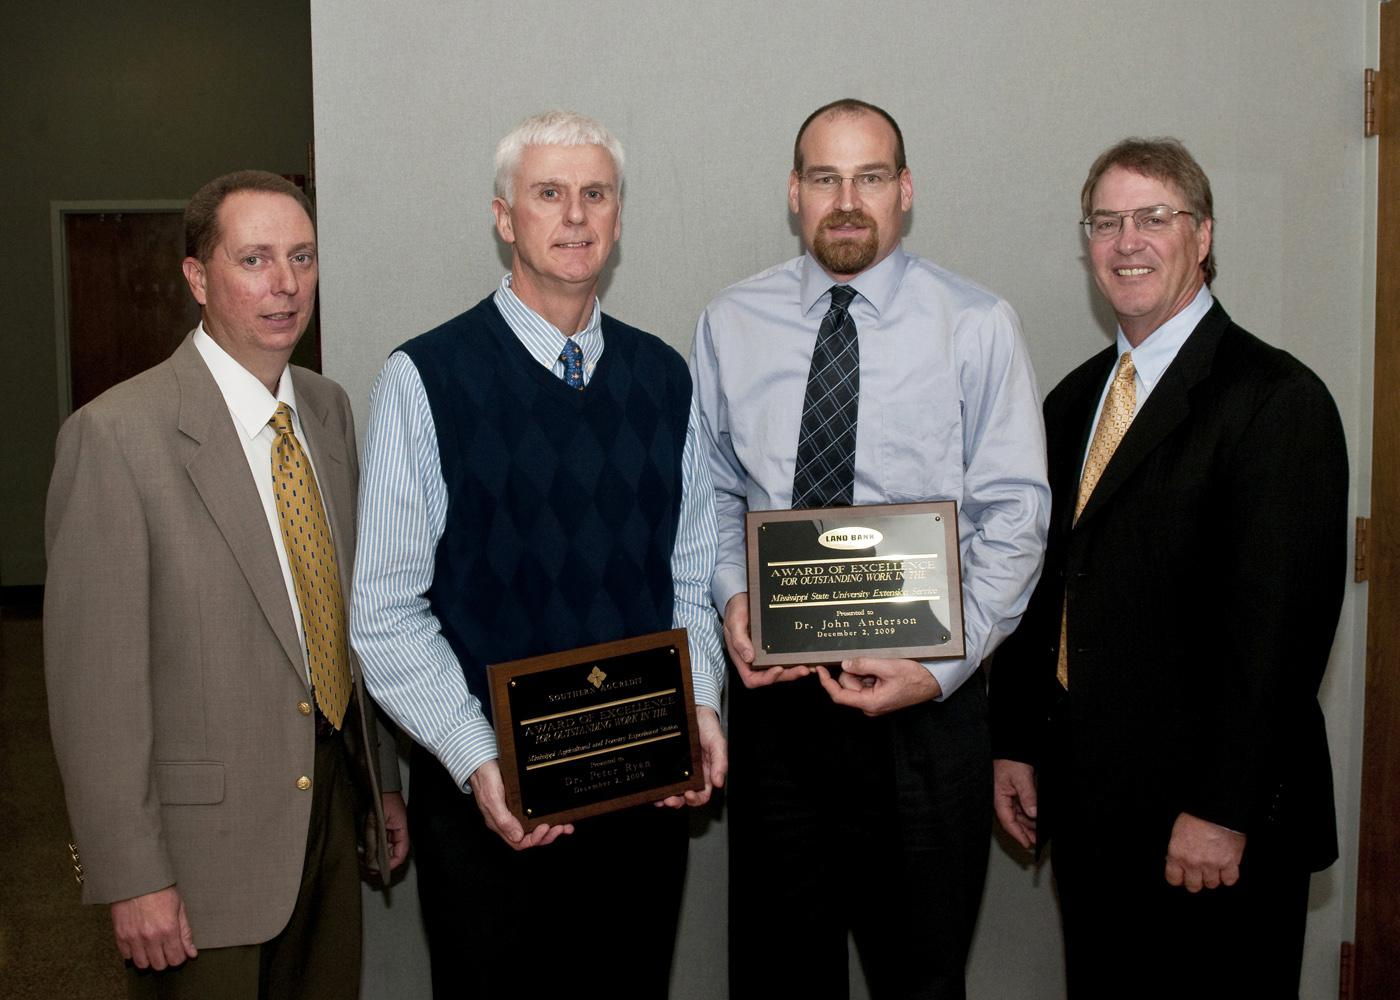 Two Mississippi State University agricultural division employees were recently honored for service and career achievement. From left are award sponsor representative Michael Barnes of Southern Ag Credit; Peter Ryan, recipient of the 2009 MAFES Excellence in Research Award; John Anderson, recipient of the 2009 Outstanding Extension Worker Award; and award sponsor representative Bill Cook of the Land Bank of North Mississippi. (Photo by Scott Corey)